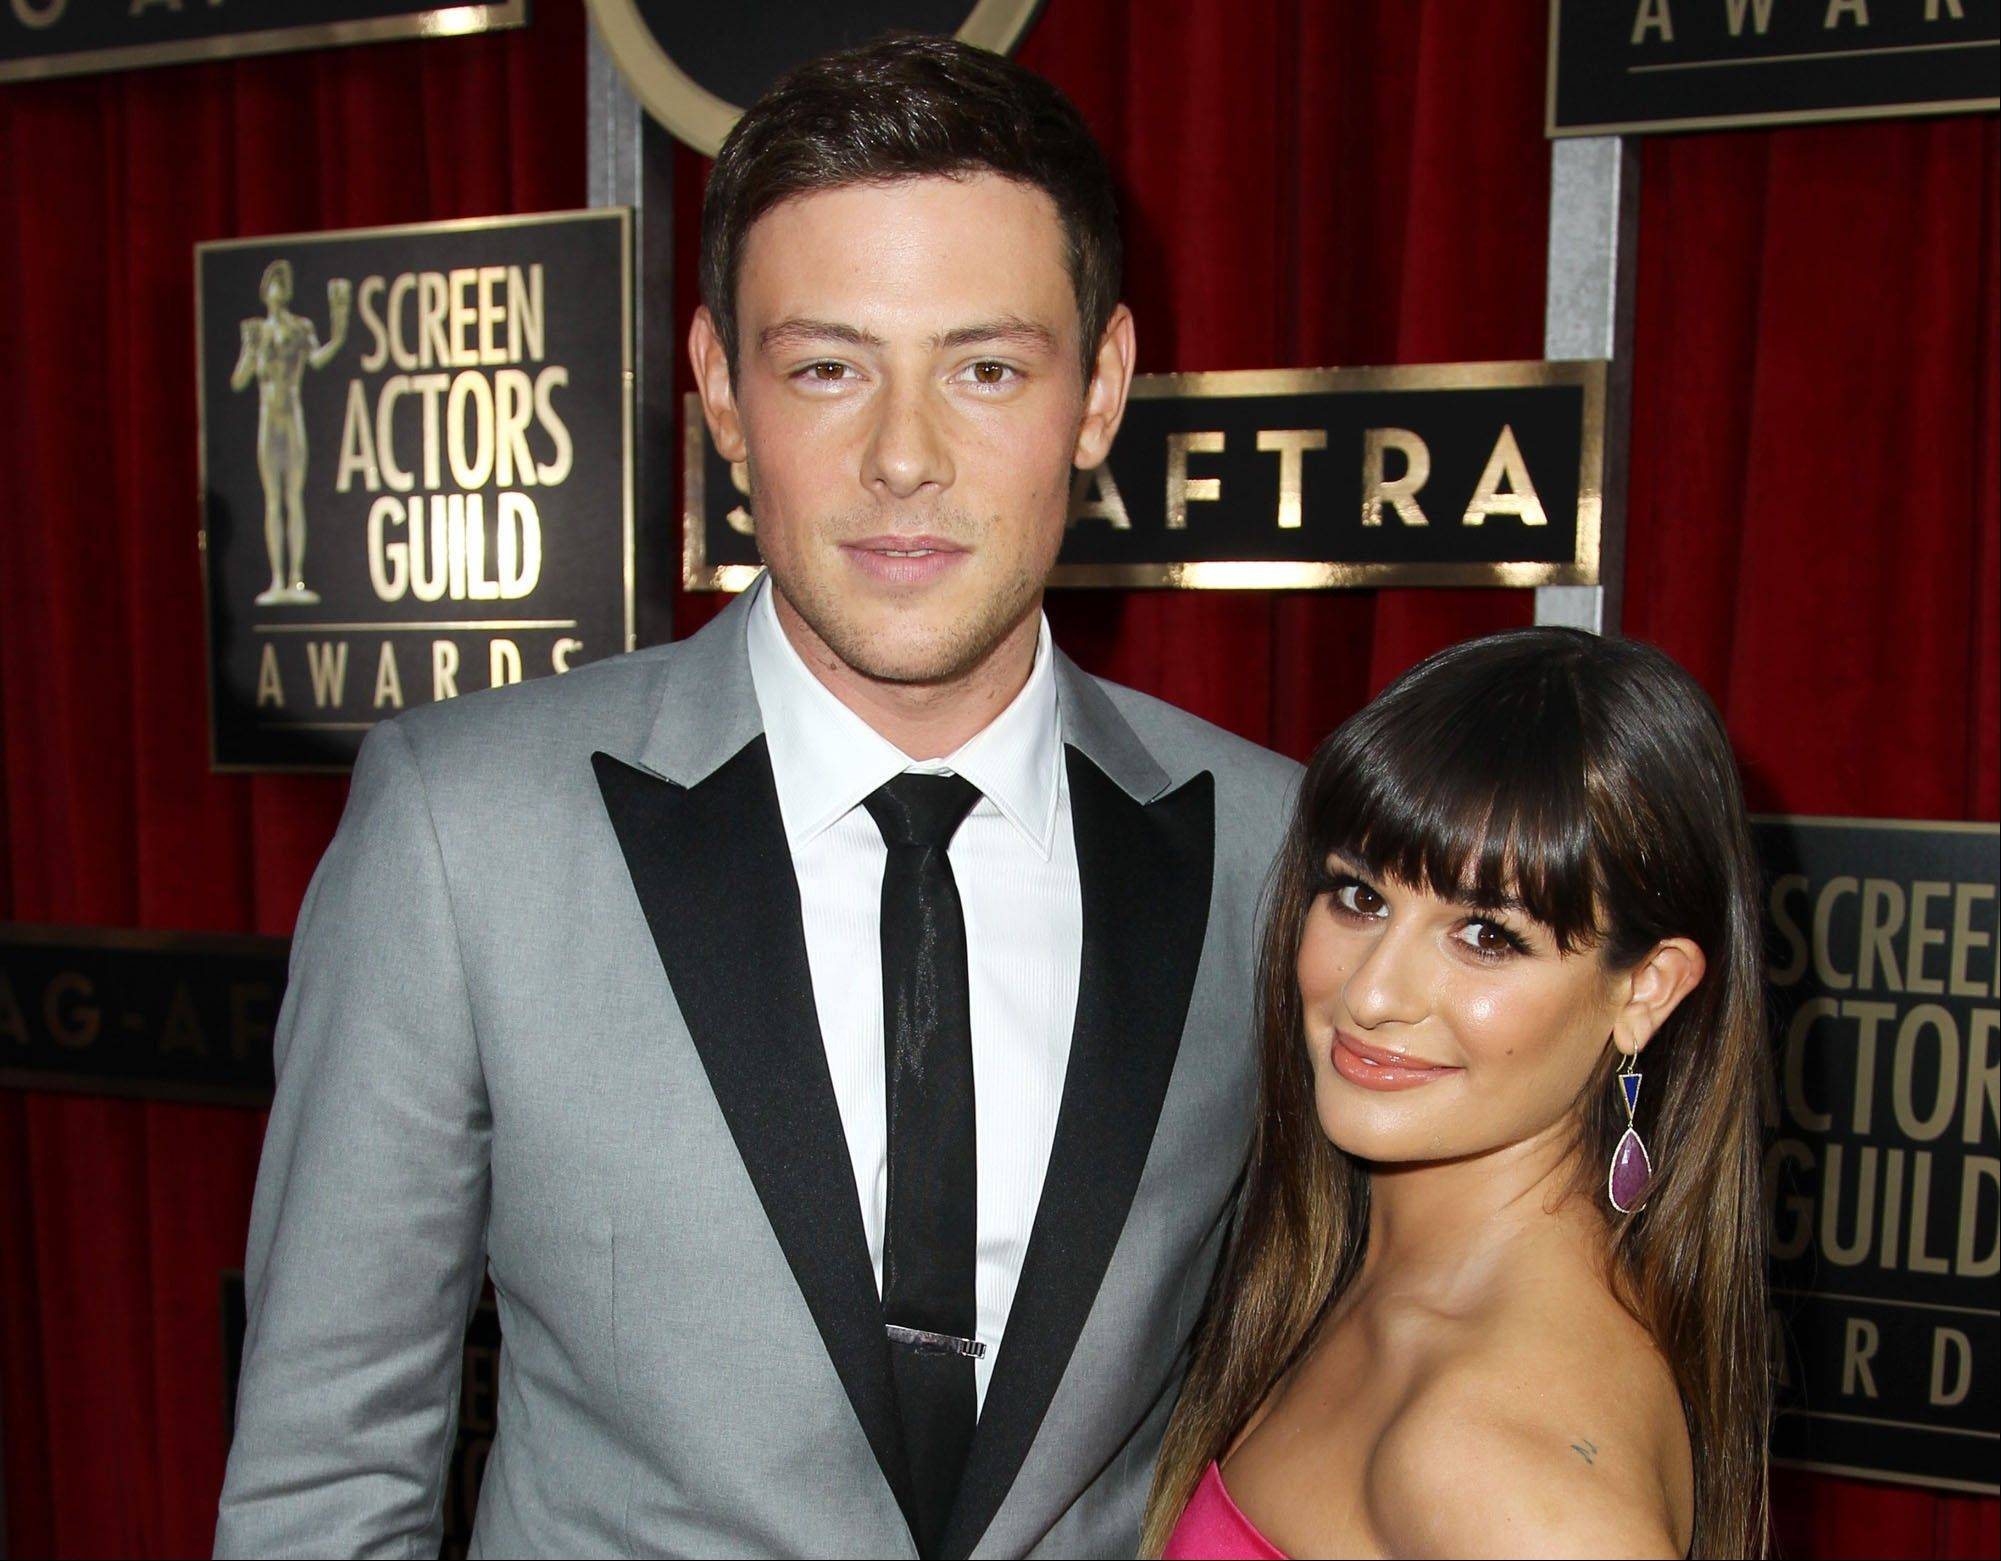 "Lea Michele is breaking her silence online after her ""Glee"" co-star and real-life boyfriend Cory Monteith died of an overdose earlier this month. The actress posted a photo of her and Monteith on Twitter Monday along with a message thanking her followers for ""helping me through this time with your enormous love & support."""